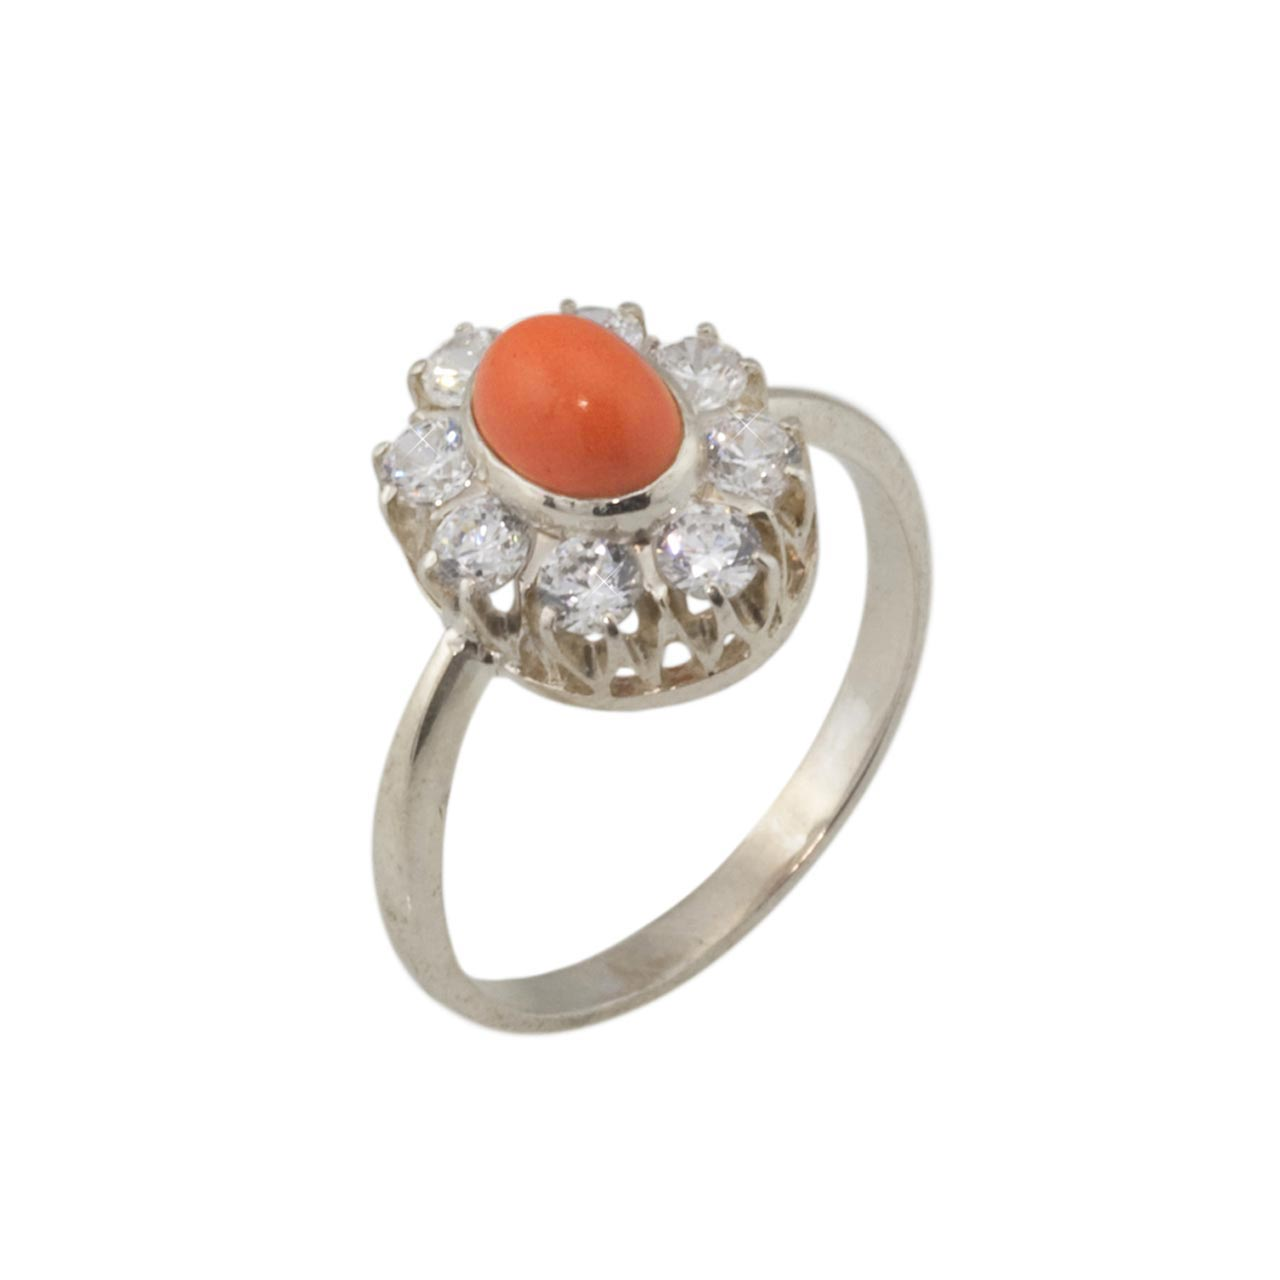 Tasman Sea Coral with CZ Halo Silver Ring